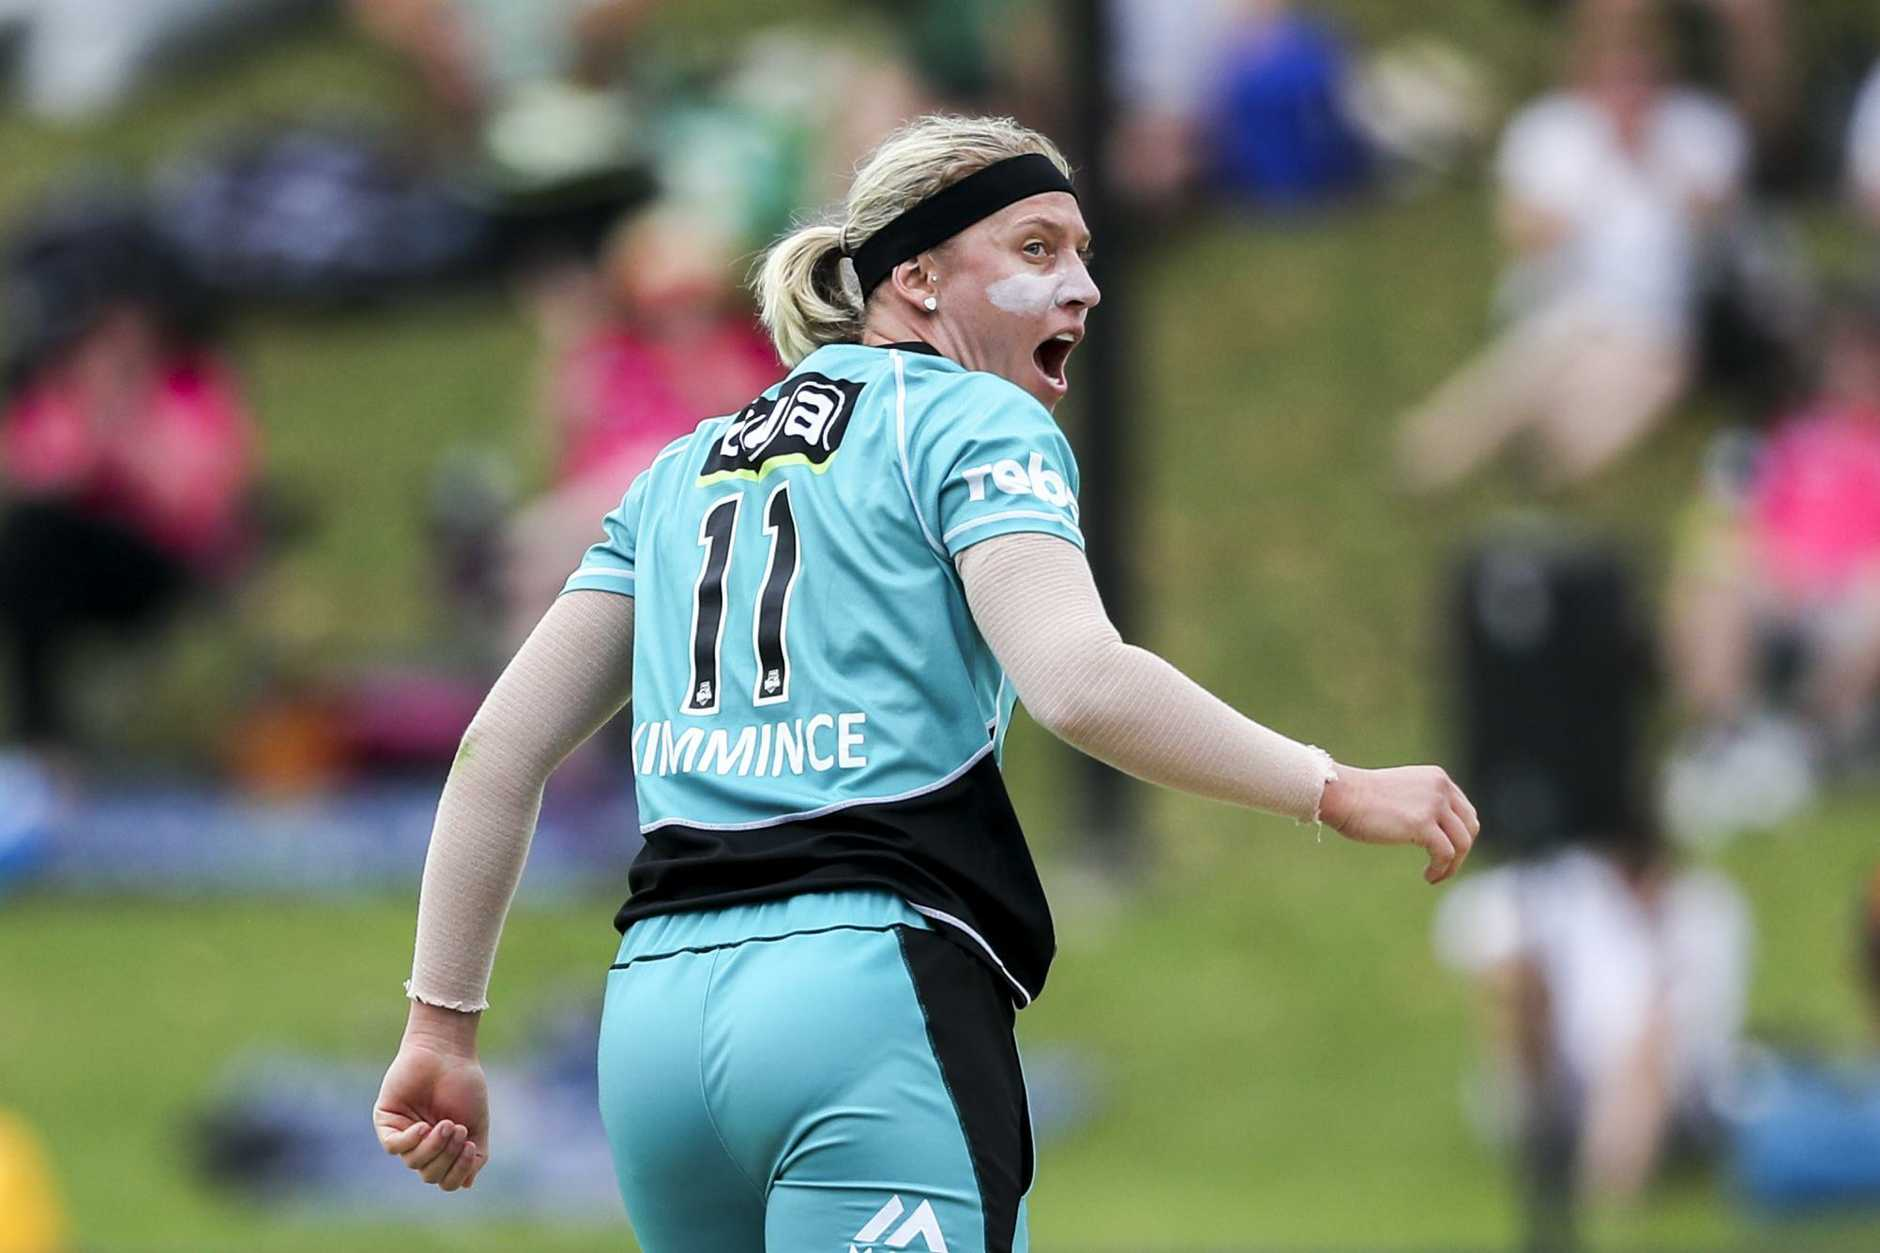 THE BIG WICKET: Warwick's Delissa Kimmince swung the game in the Heat's favour after dismissing explosive Sydney Thunder opener Rachel Priest on Saturday in Sydney.